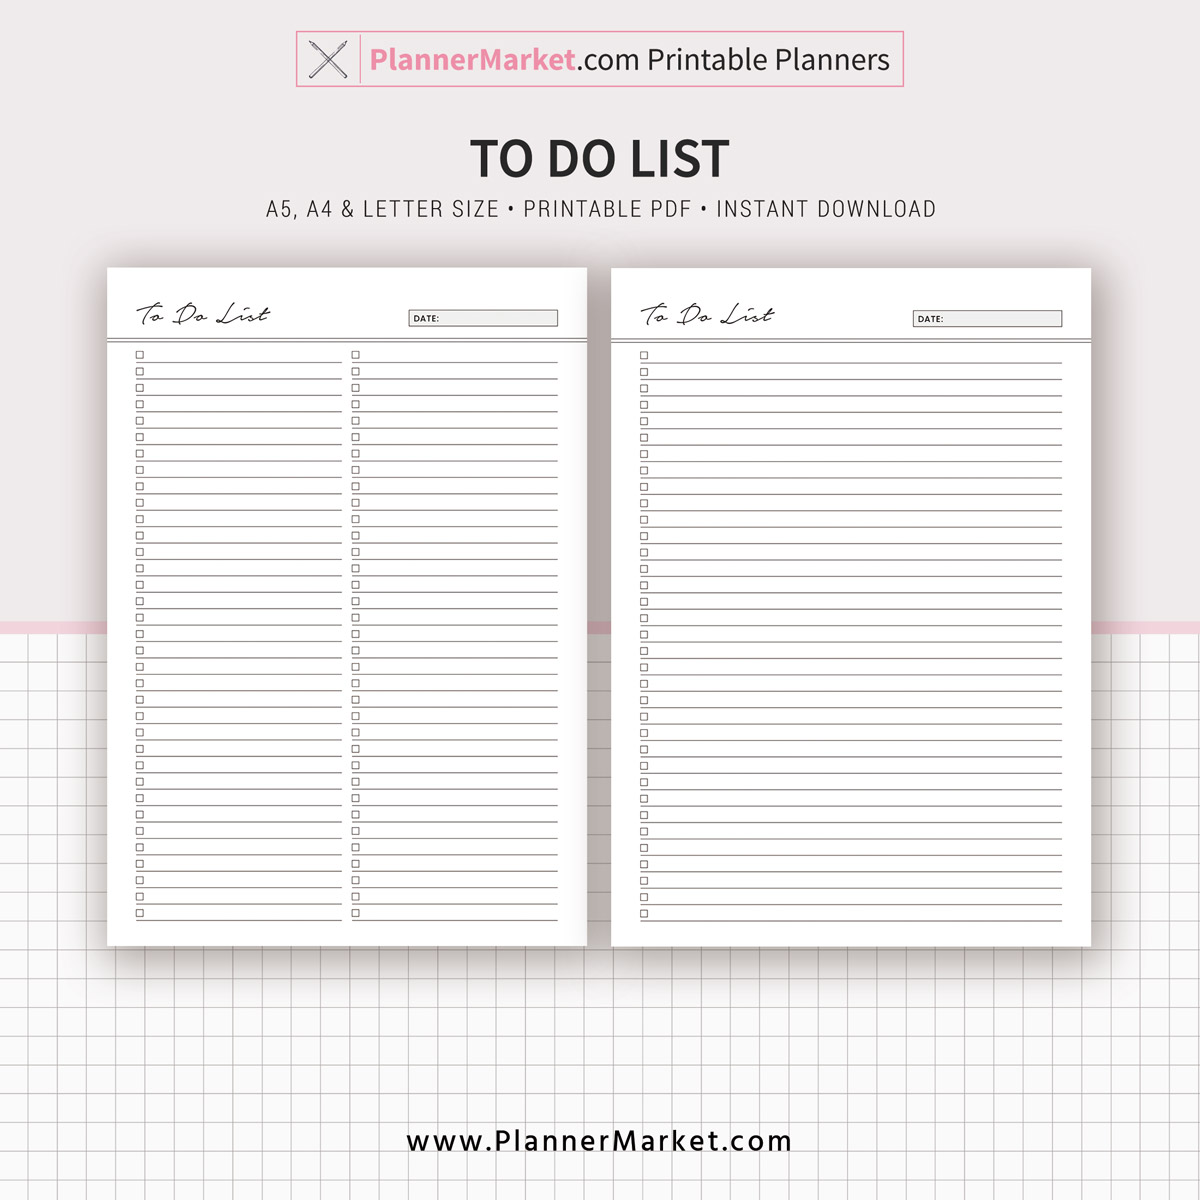 photo about Printable to Do List Pdf titled In direction of Do Checklist, Planner 2019, A5, A4, Letter Dimension, Printable Planner, Planner Refill, Planner Binder, Immediate Down load